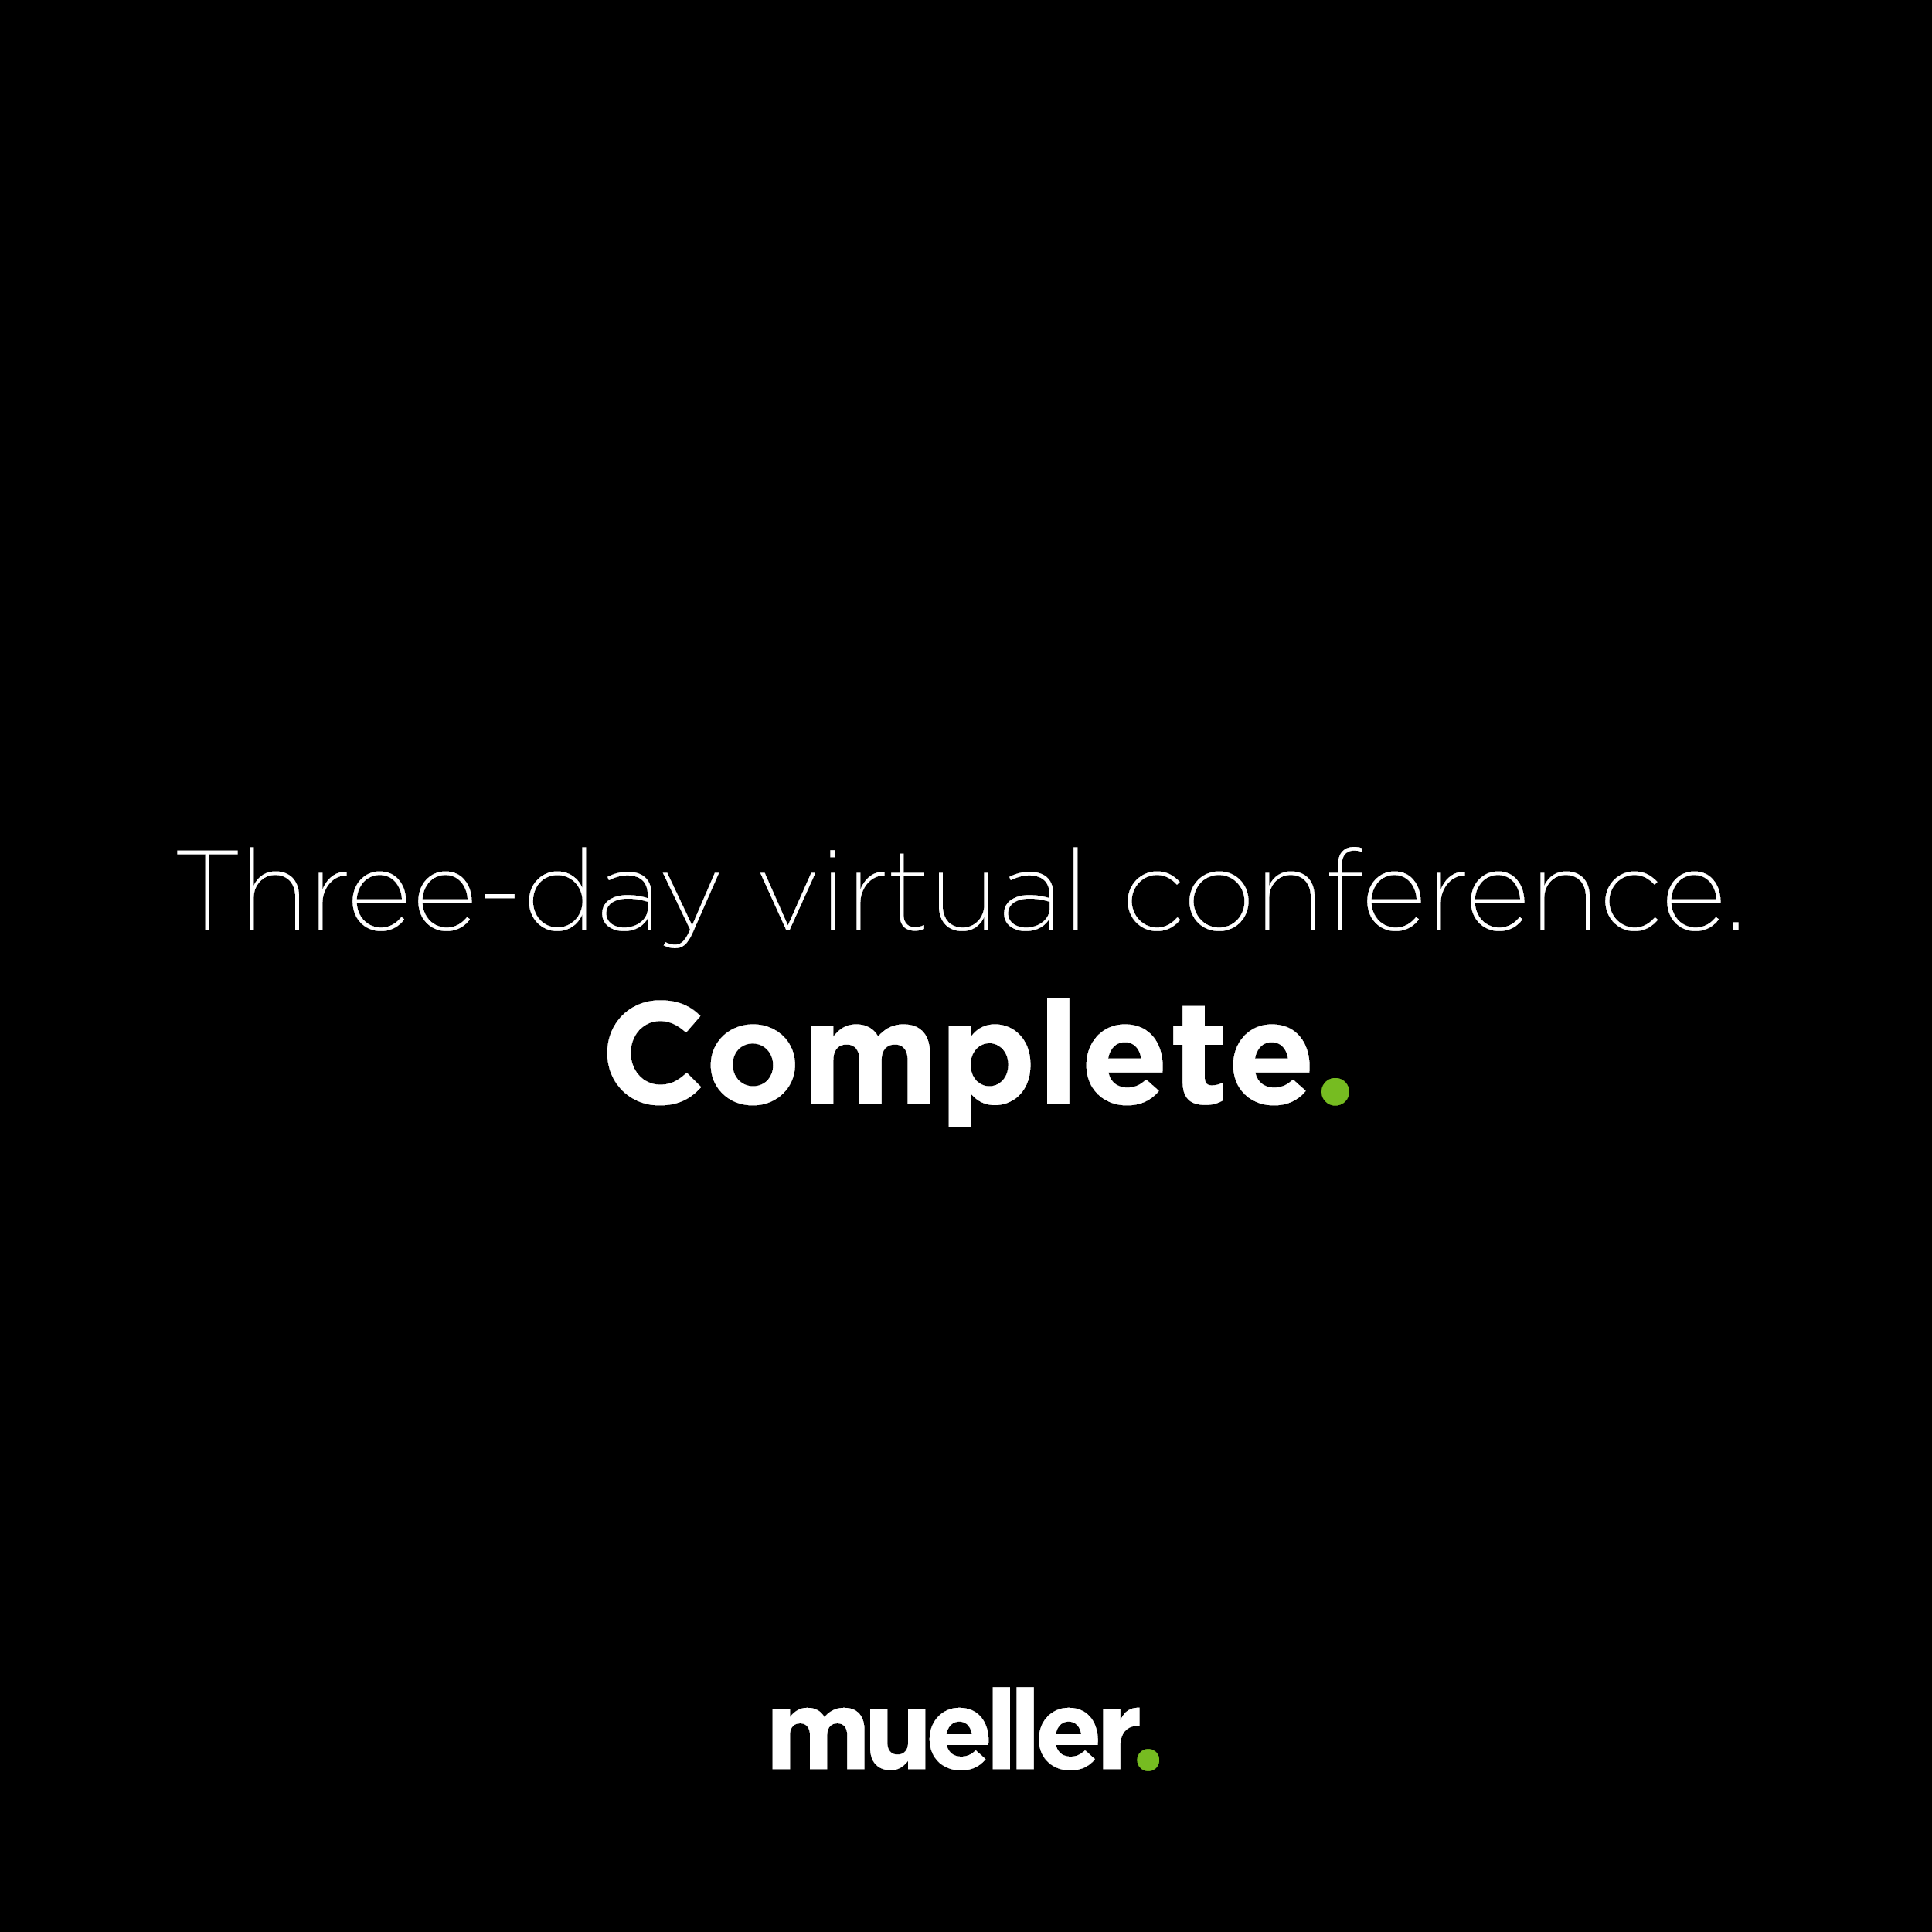 Three-day virtual conference. Complete.